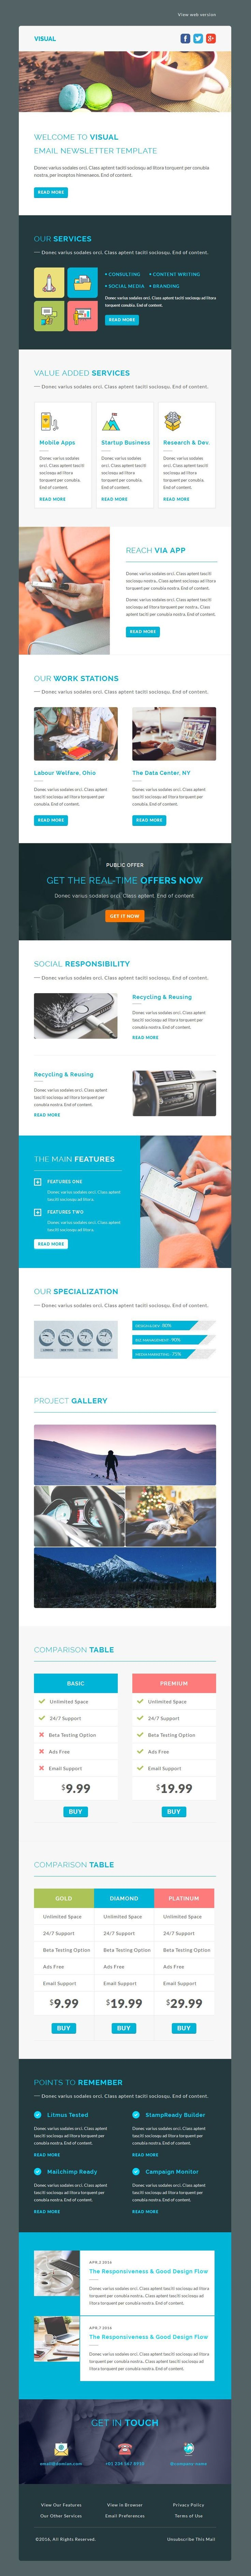 Visual responsive email #newsletter template designed for general, personal, corporate, business and office use  All templates are StampReady, MailChimp & Campaign Monitor compatible #emailtemplate #marketing